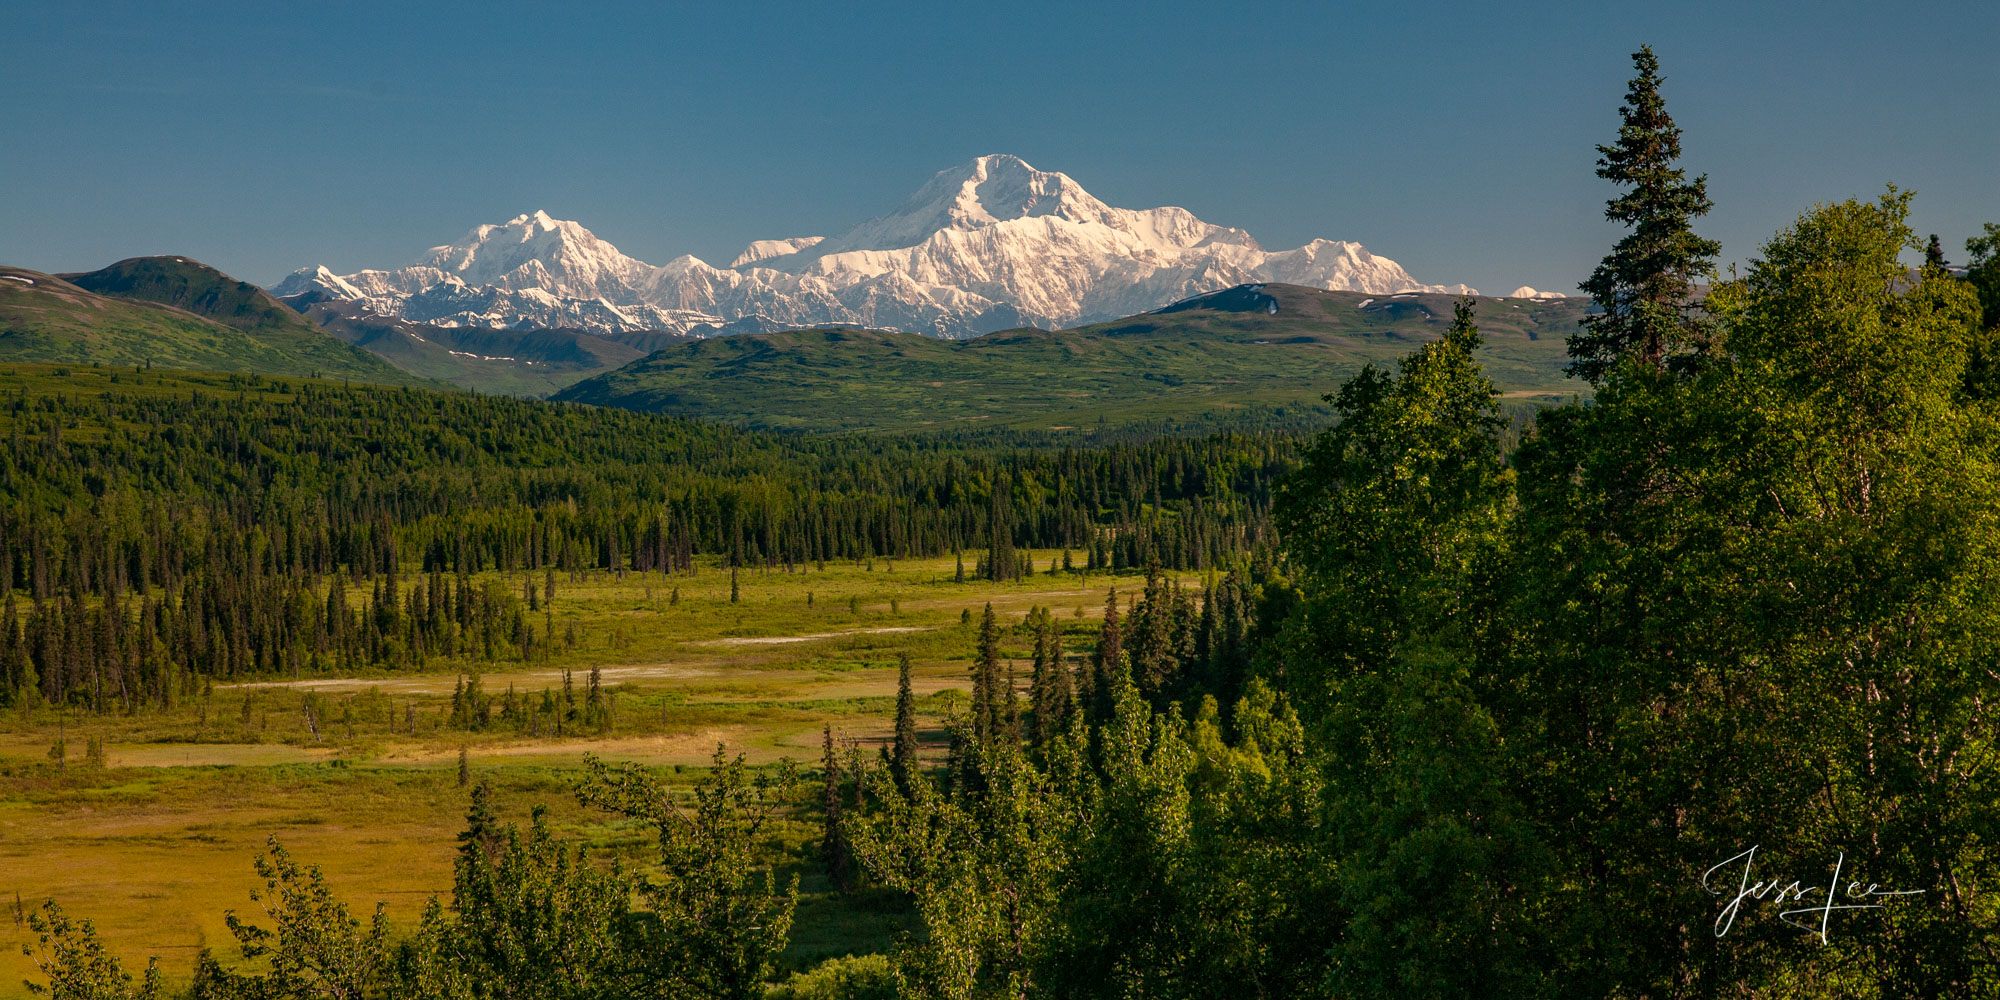 Snow covered mountains and lush evergreens in Denali National Park, Alaska